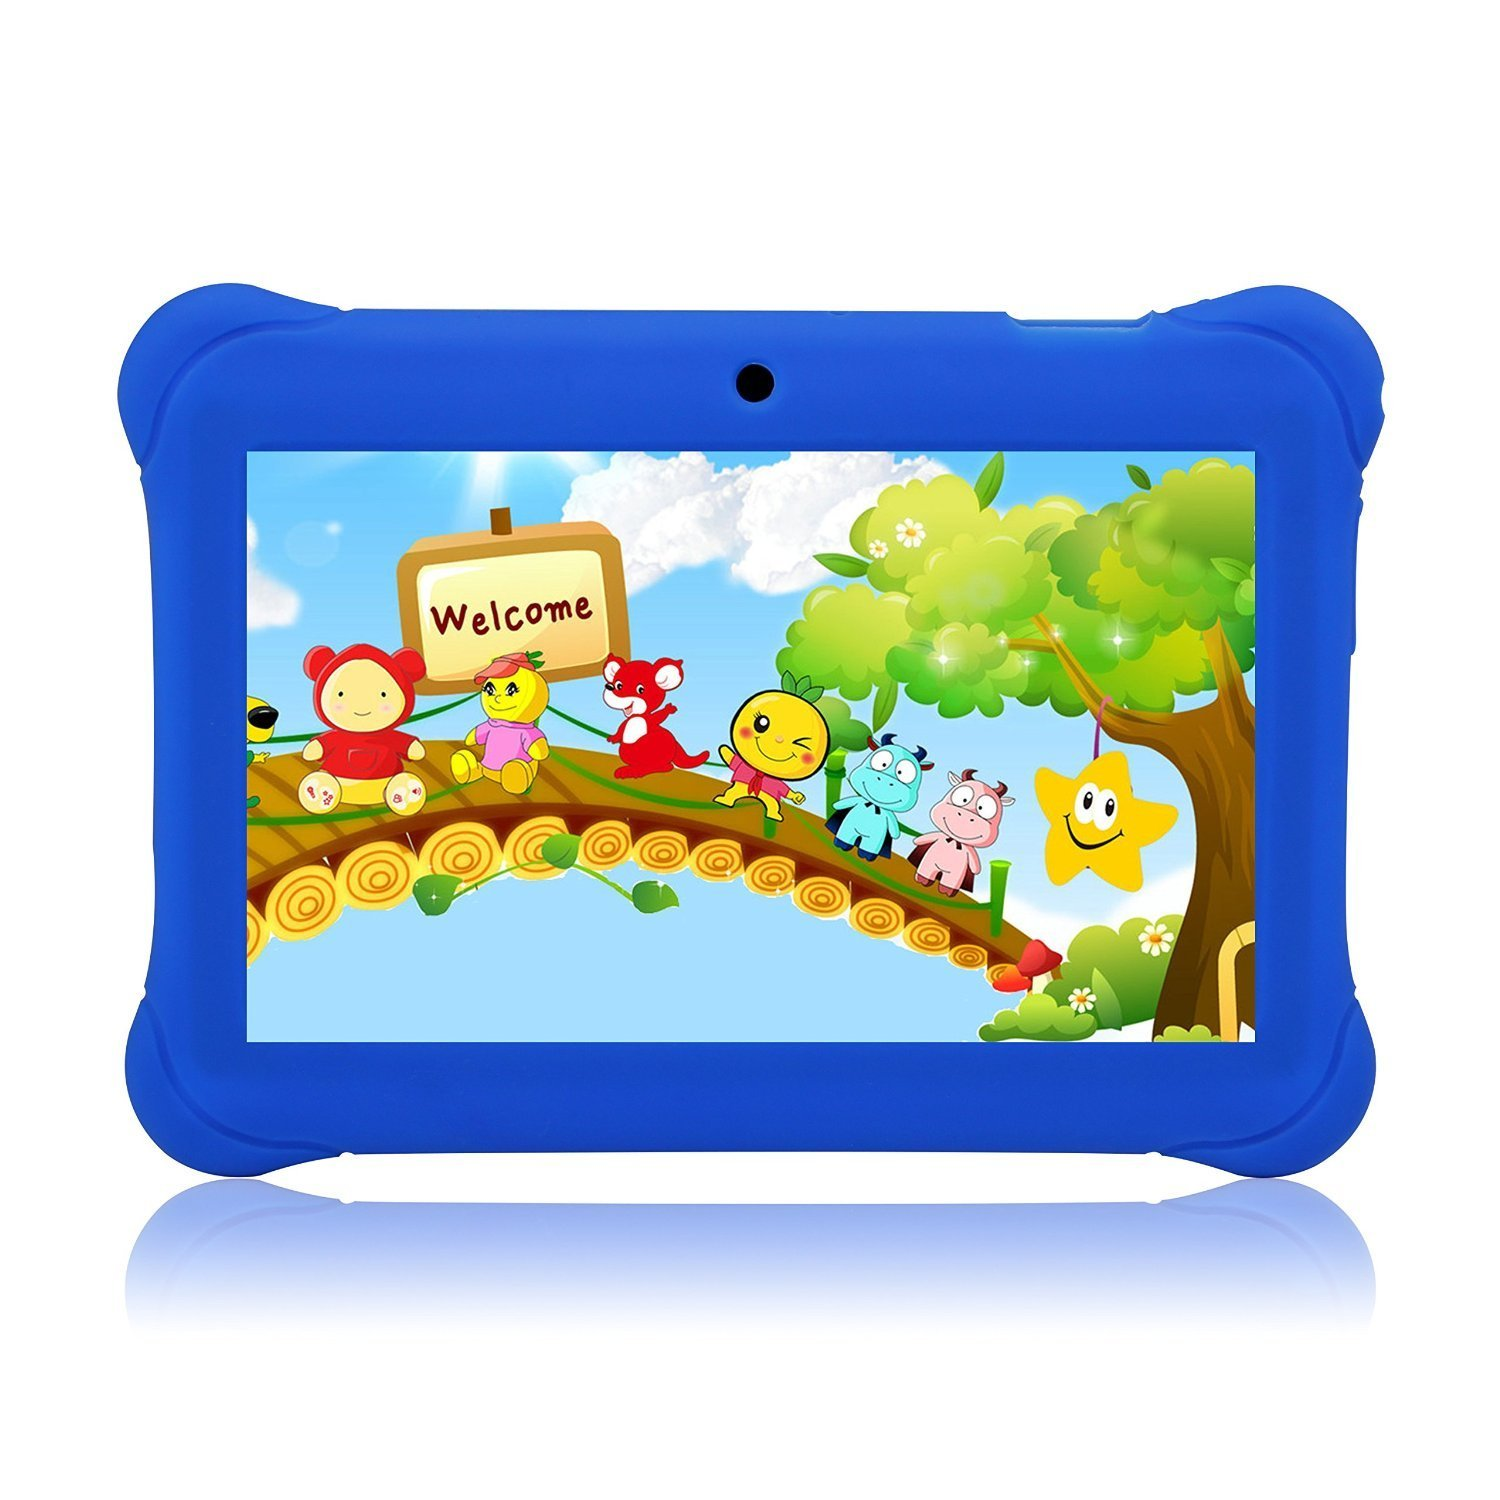 Tagital 7'' T7K Quad Core Android Kids Tablet, with Wifi and Camera and Games, HD Kids Edition with Kid Mode Pre-Installed (Blue)